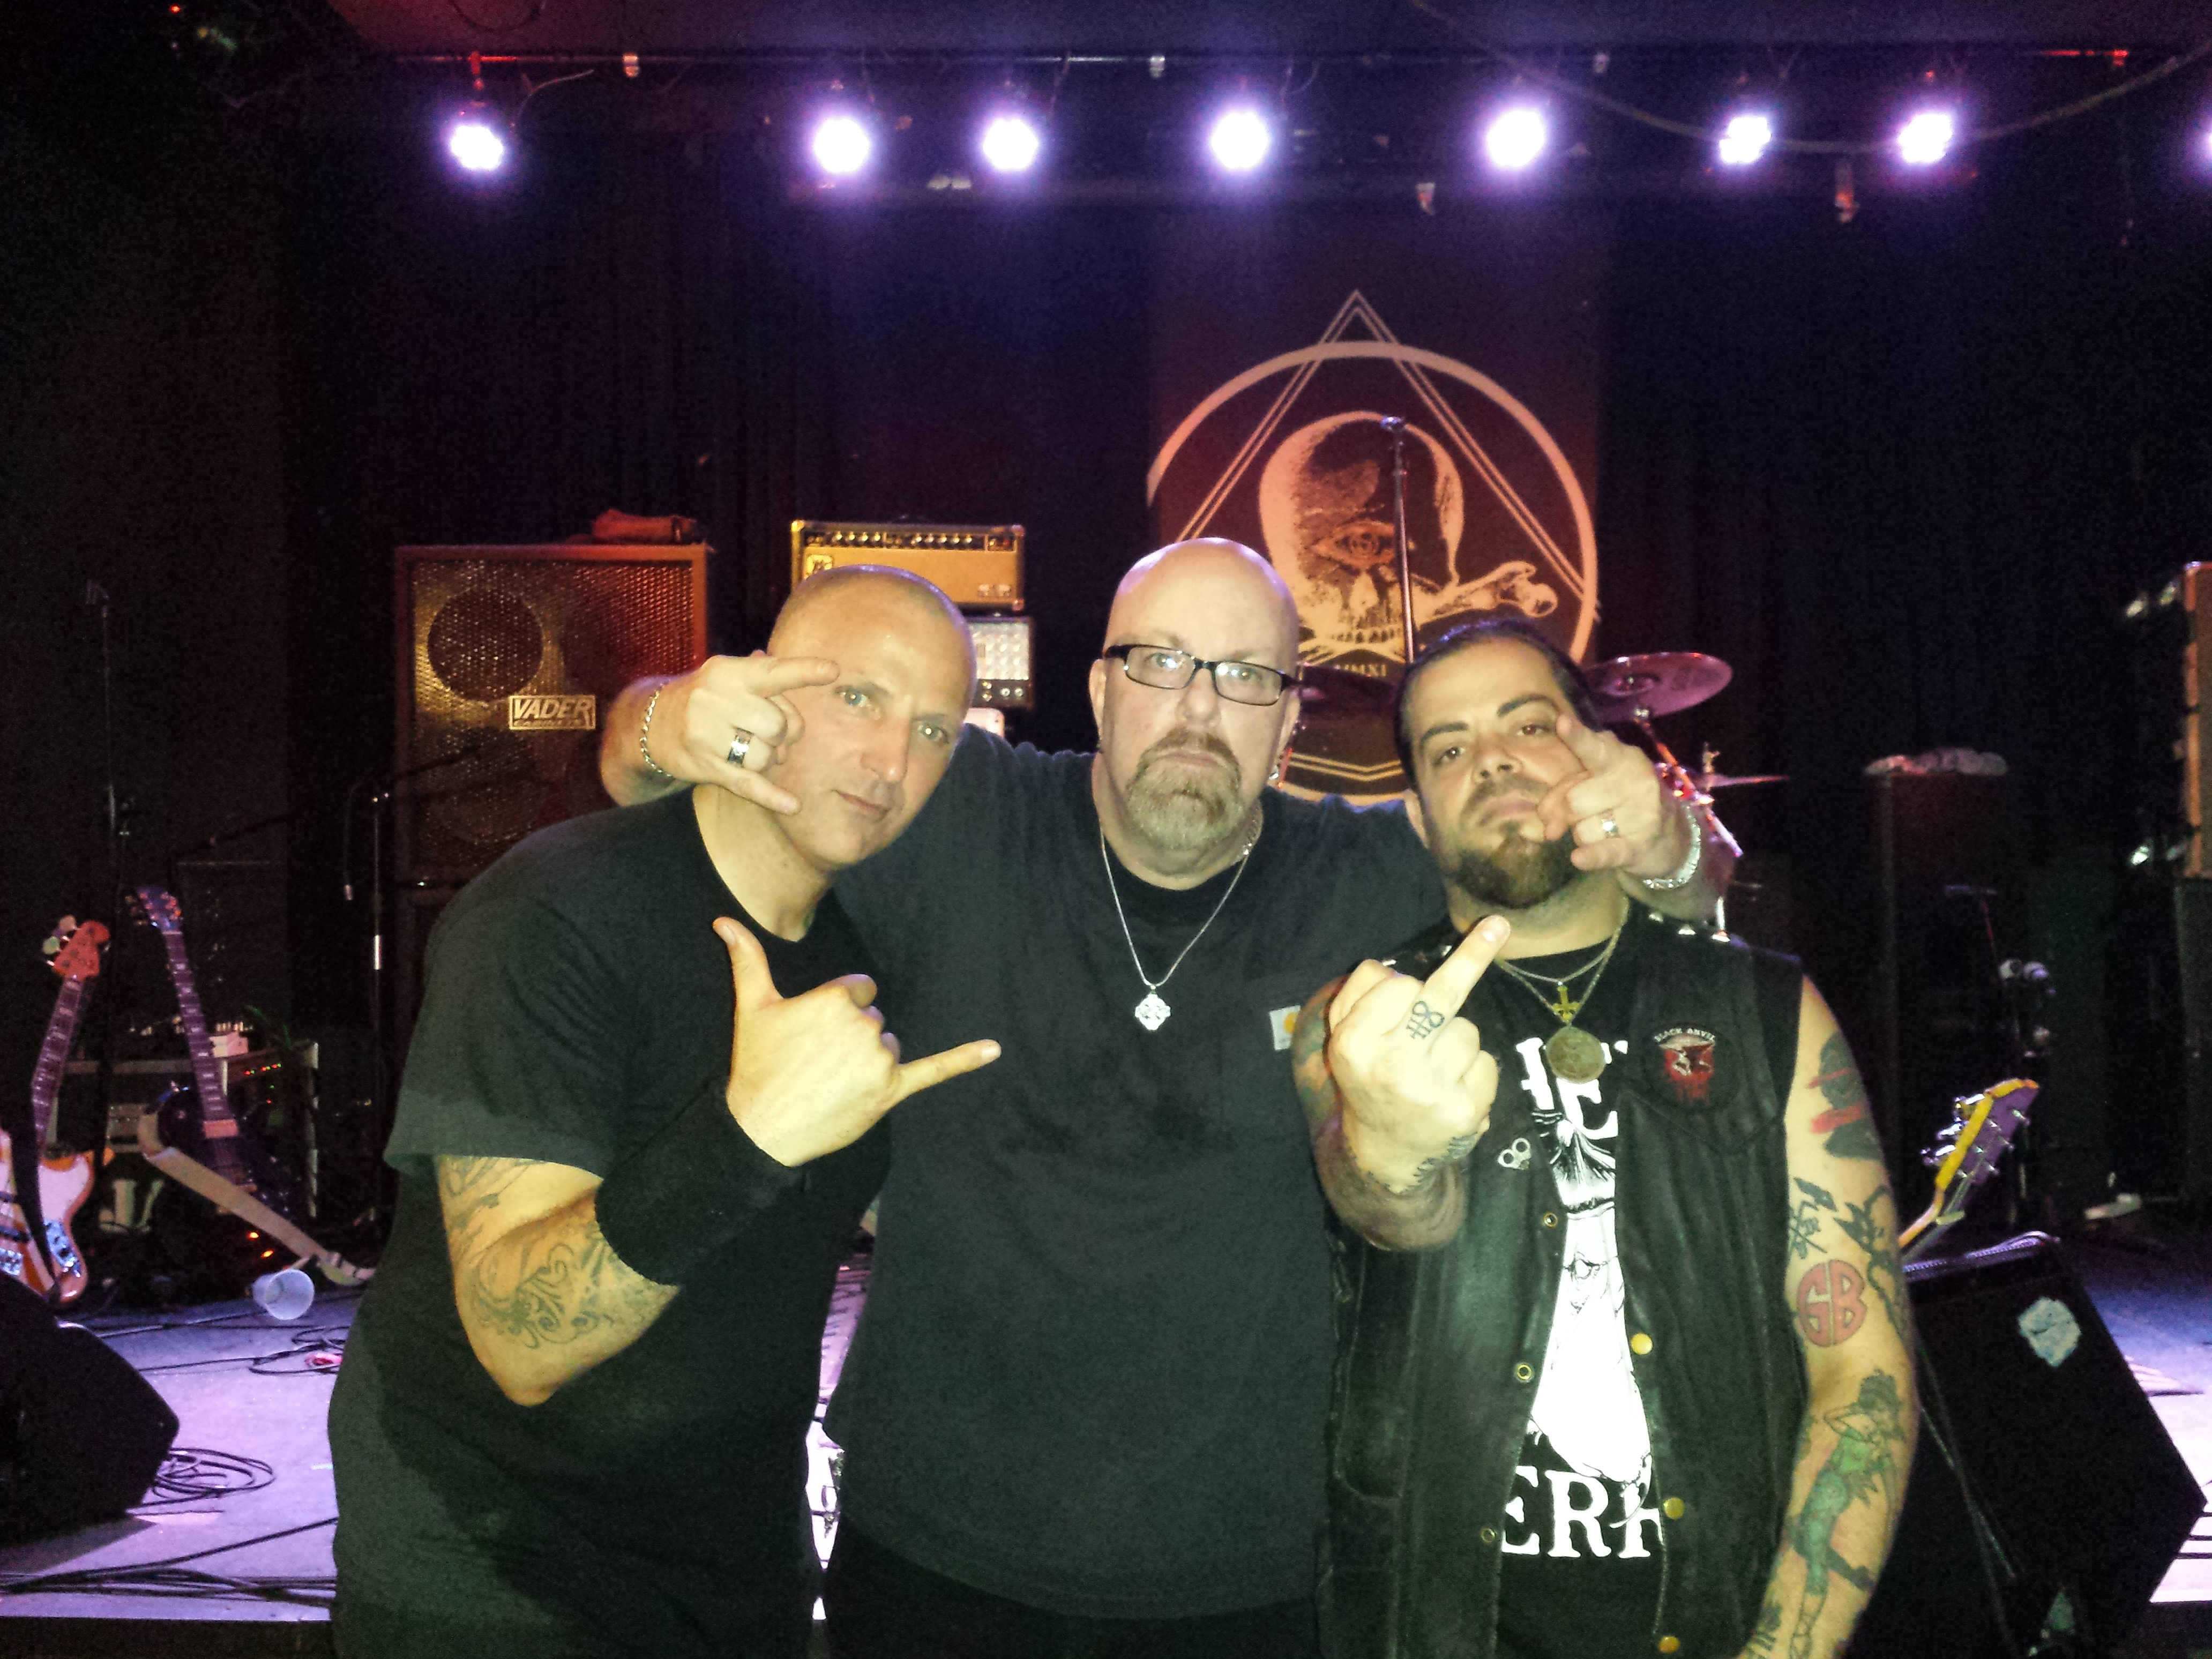 With Michael Hill (of Tombs, left) and Paul Delaney (of Black Anvil, right) after Tombs set at Saint Vitus Bar in Brooklyn, NY- July 25, 2014